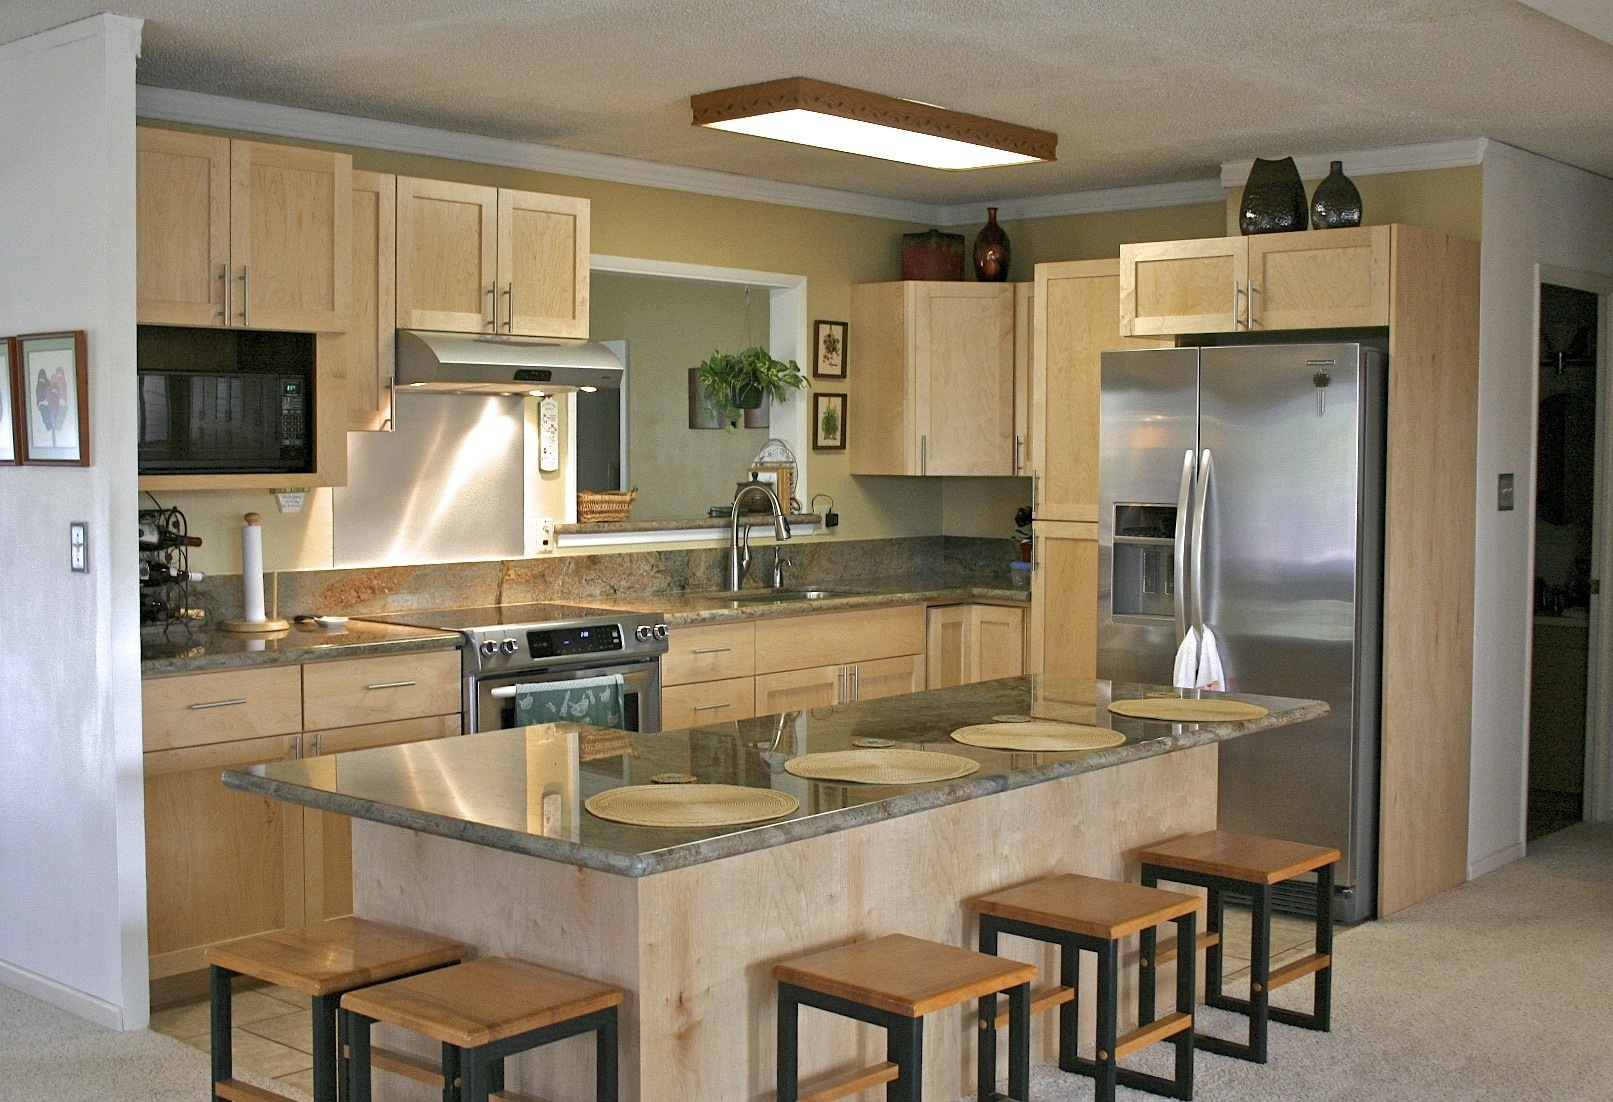 from ... & Kitchen Design Cabinet Supplier Commercial Cabinetry: Kendall ... kurilladesign.com